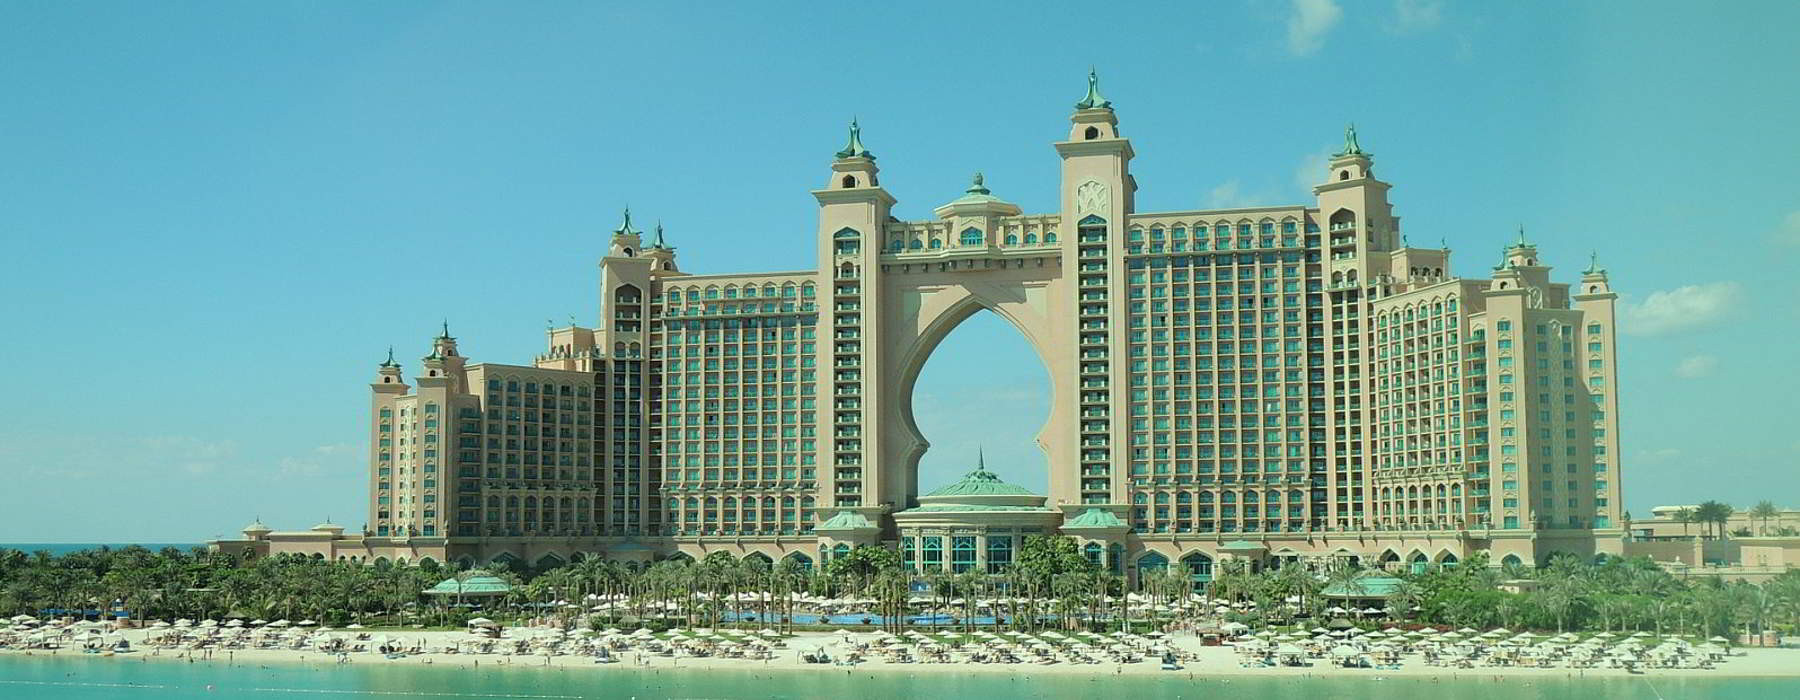 sights dubai atlantis